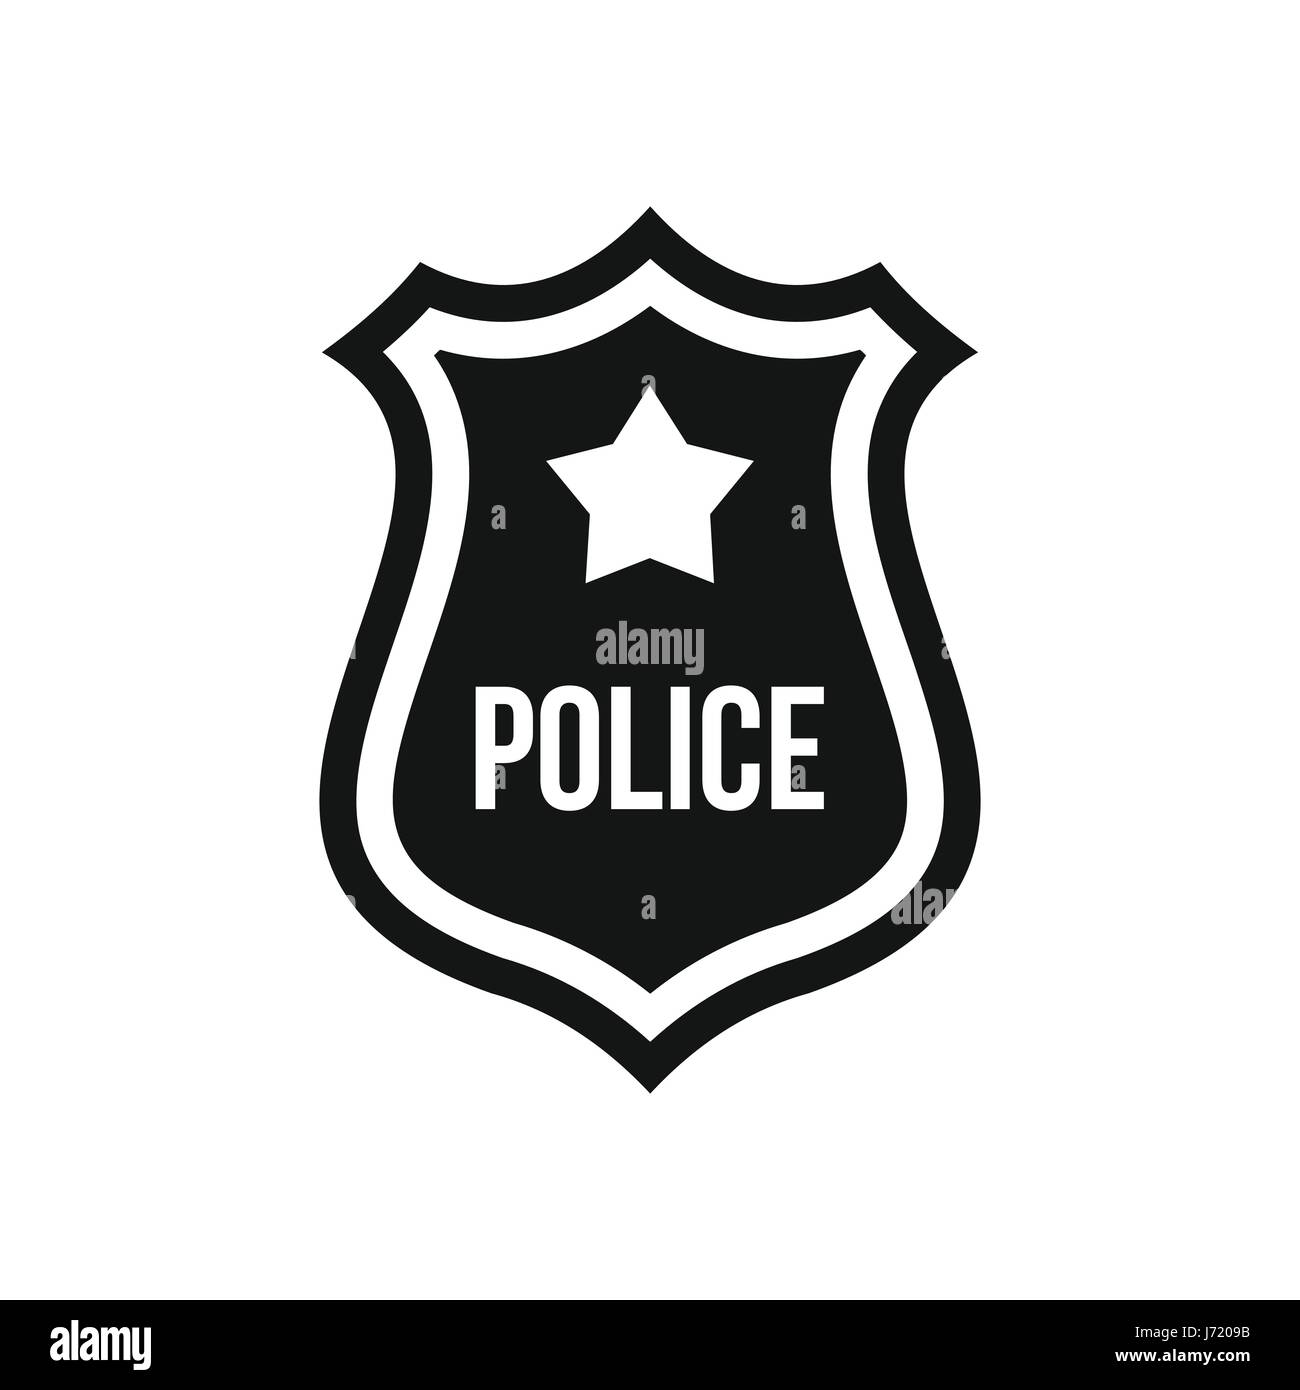 Police Badge Black Stock Photos & Police Badge Black Stock ...